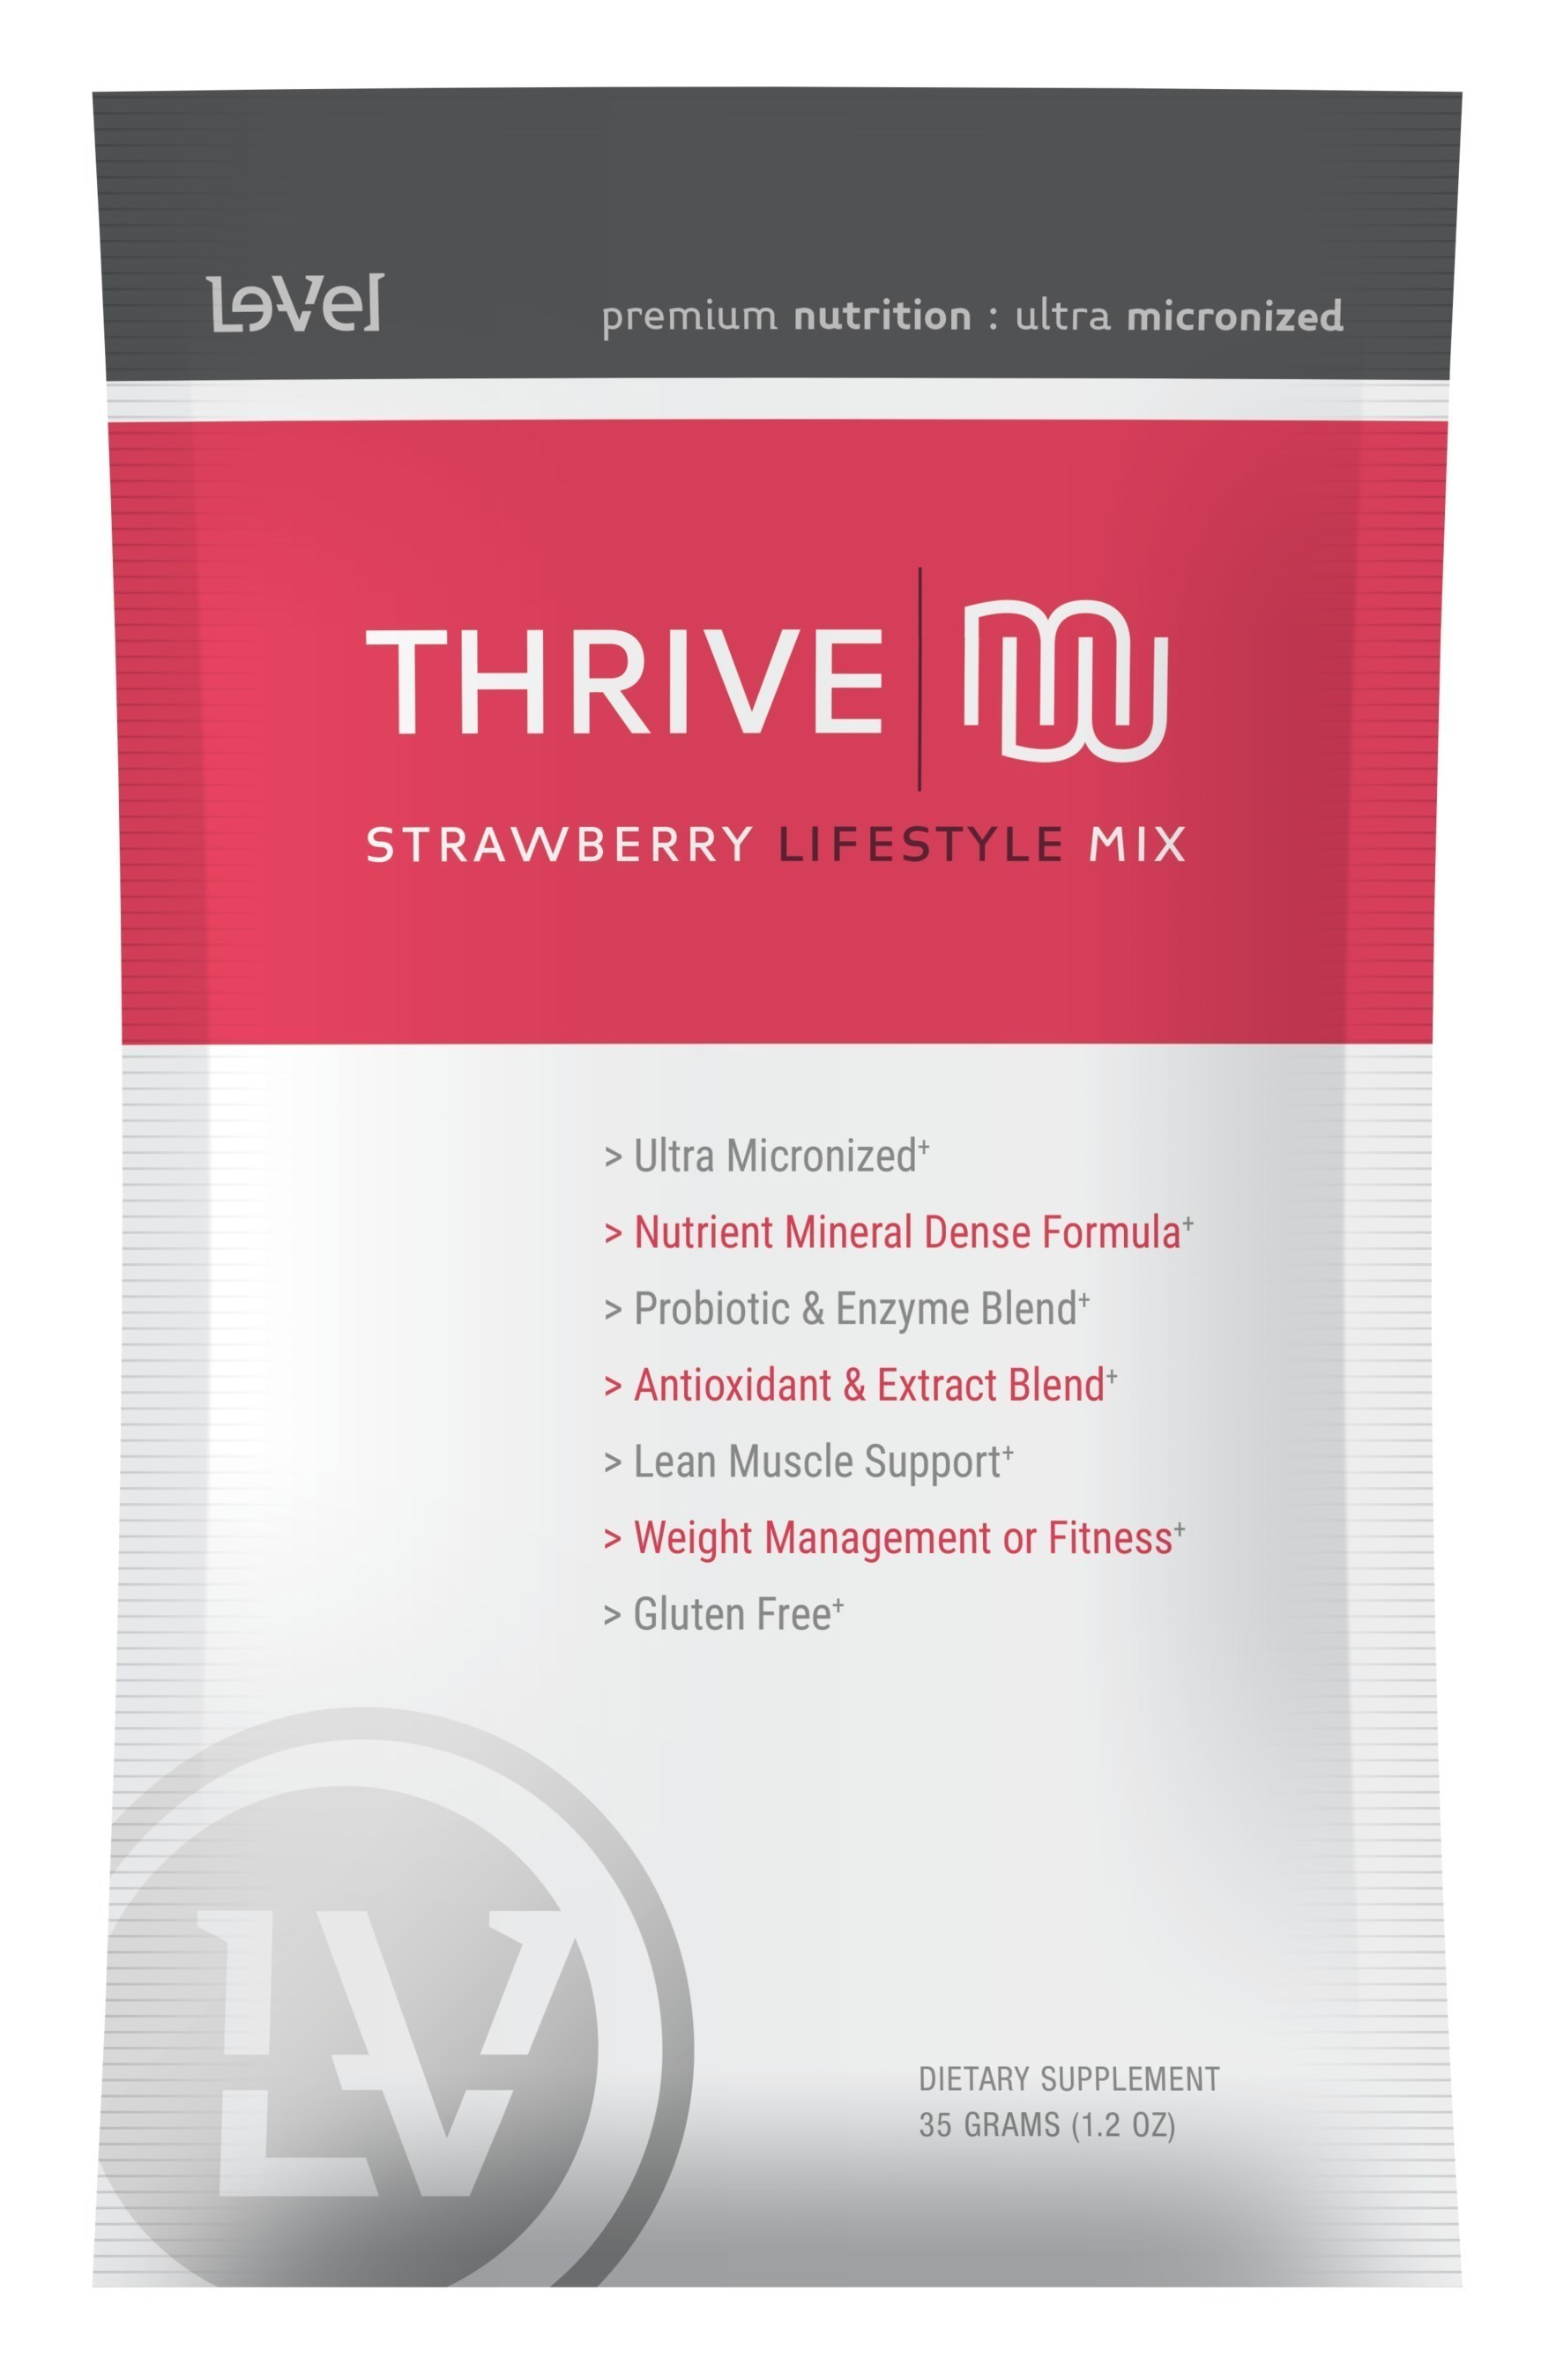 Le-Vel announced the addition of a new Thrive Premium Lifestyle Mix flavor: Creamy Strawberry.